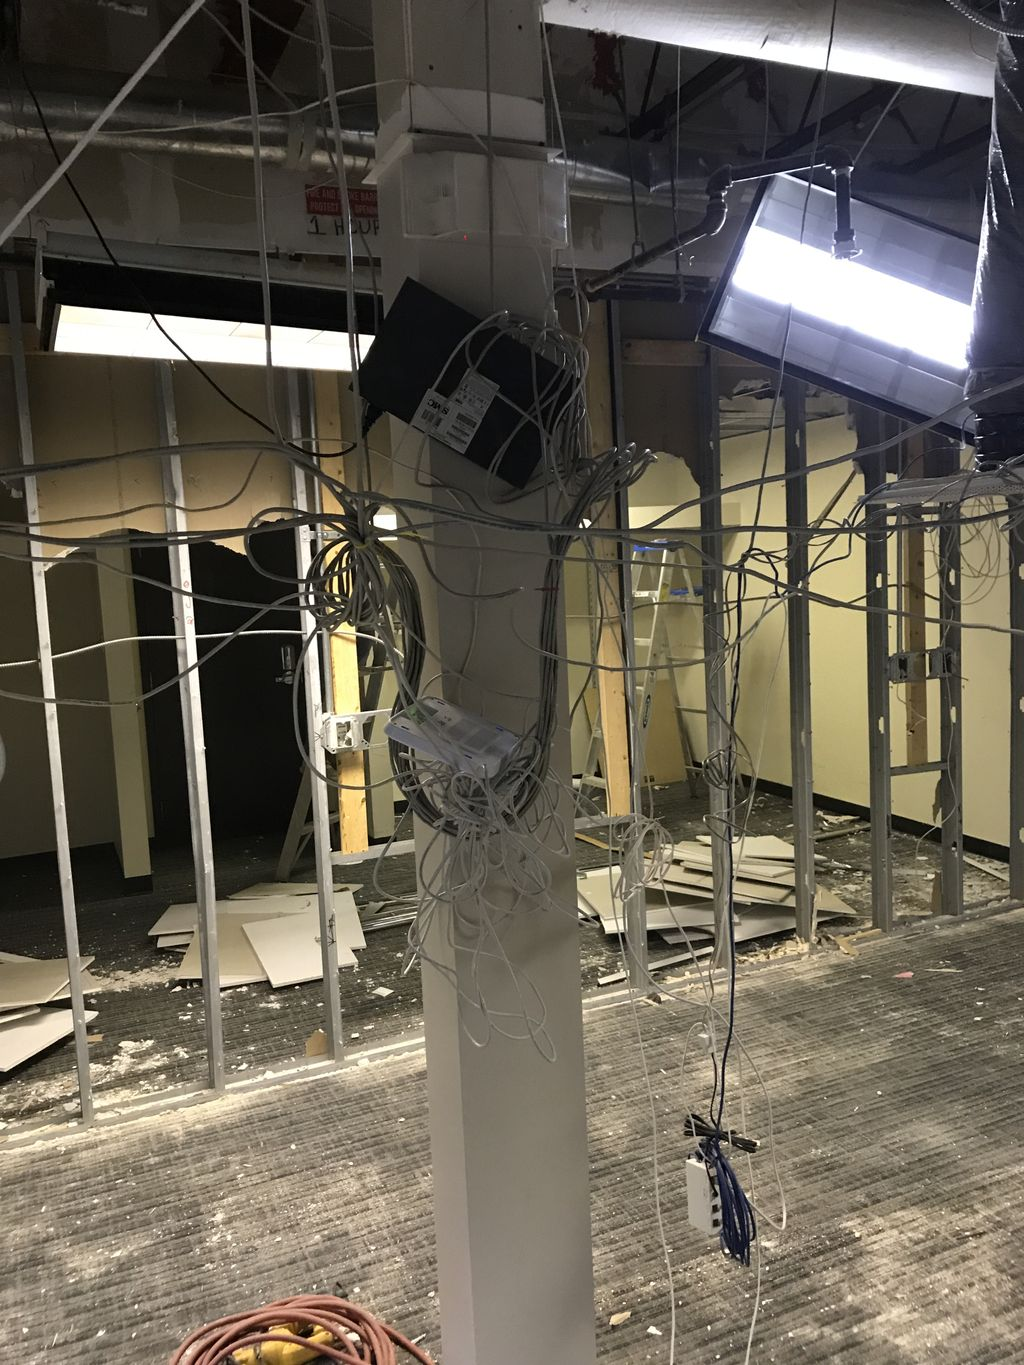 Bridal by Lori, Say Yes to the Dress first floor Renovation